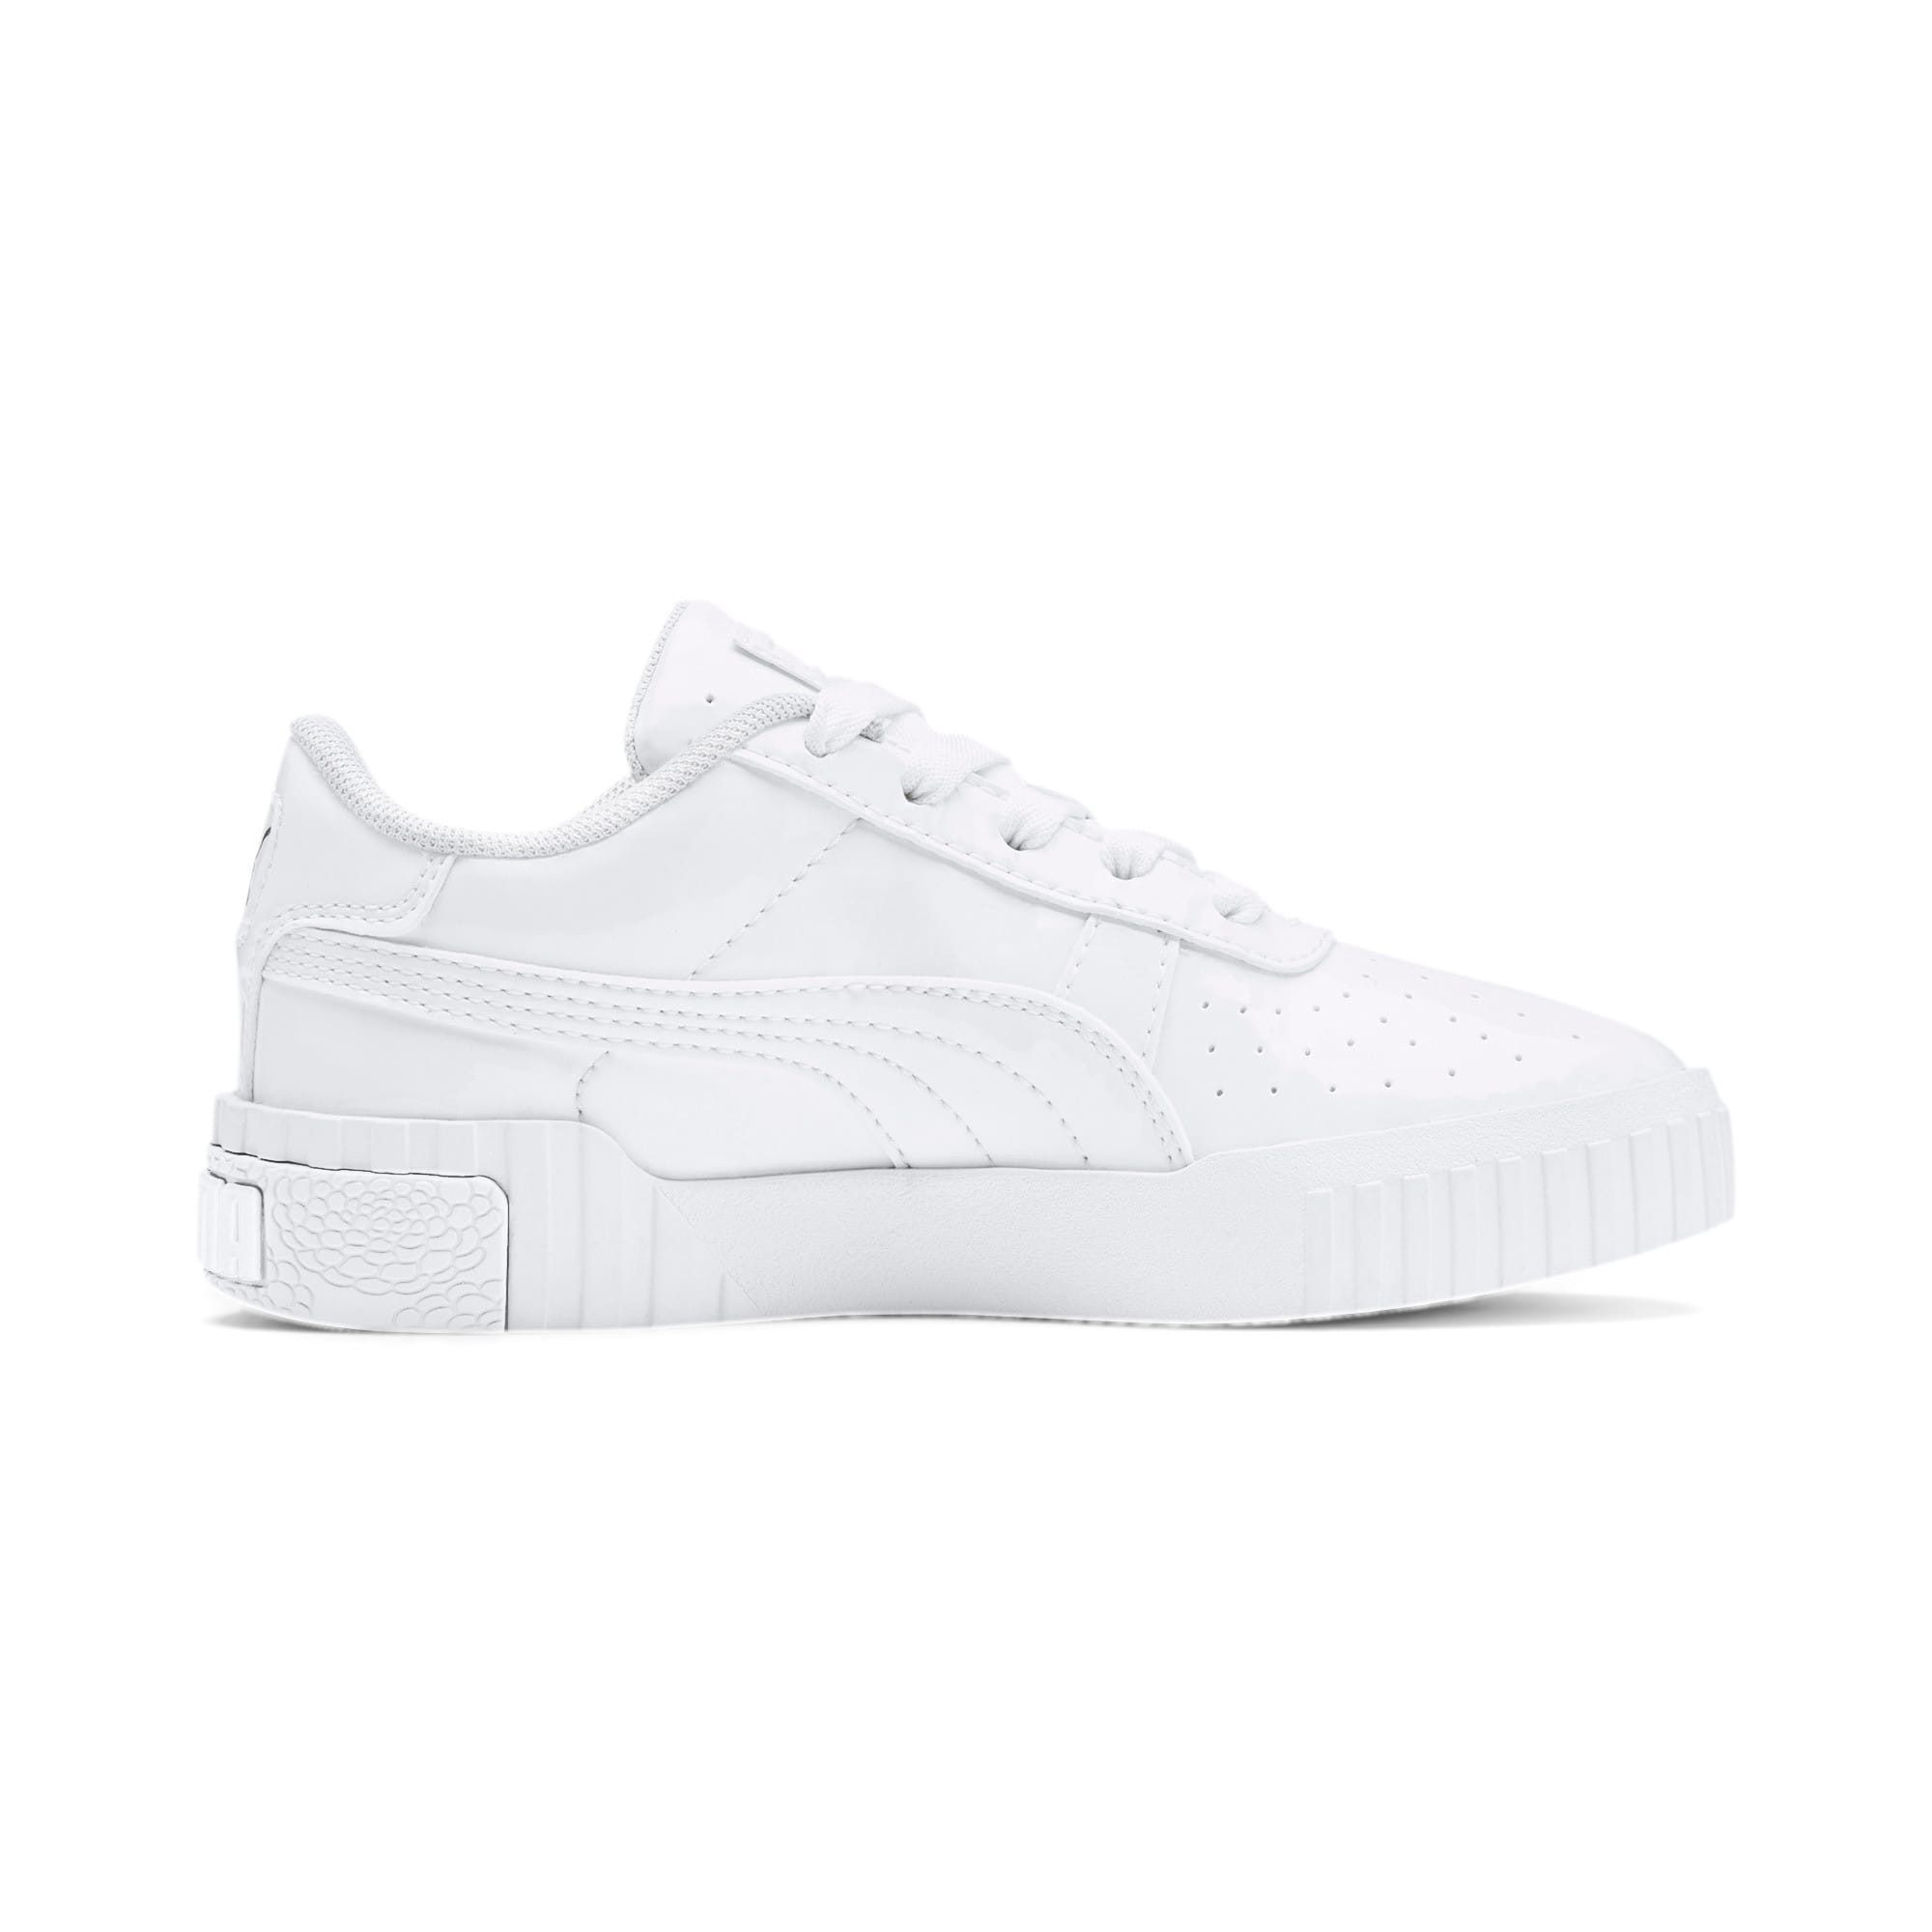 Thumbnail 5 of Cali Patent Kids' Trainers, Puma White-Puma White, medium